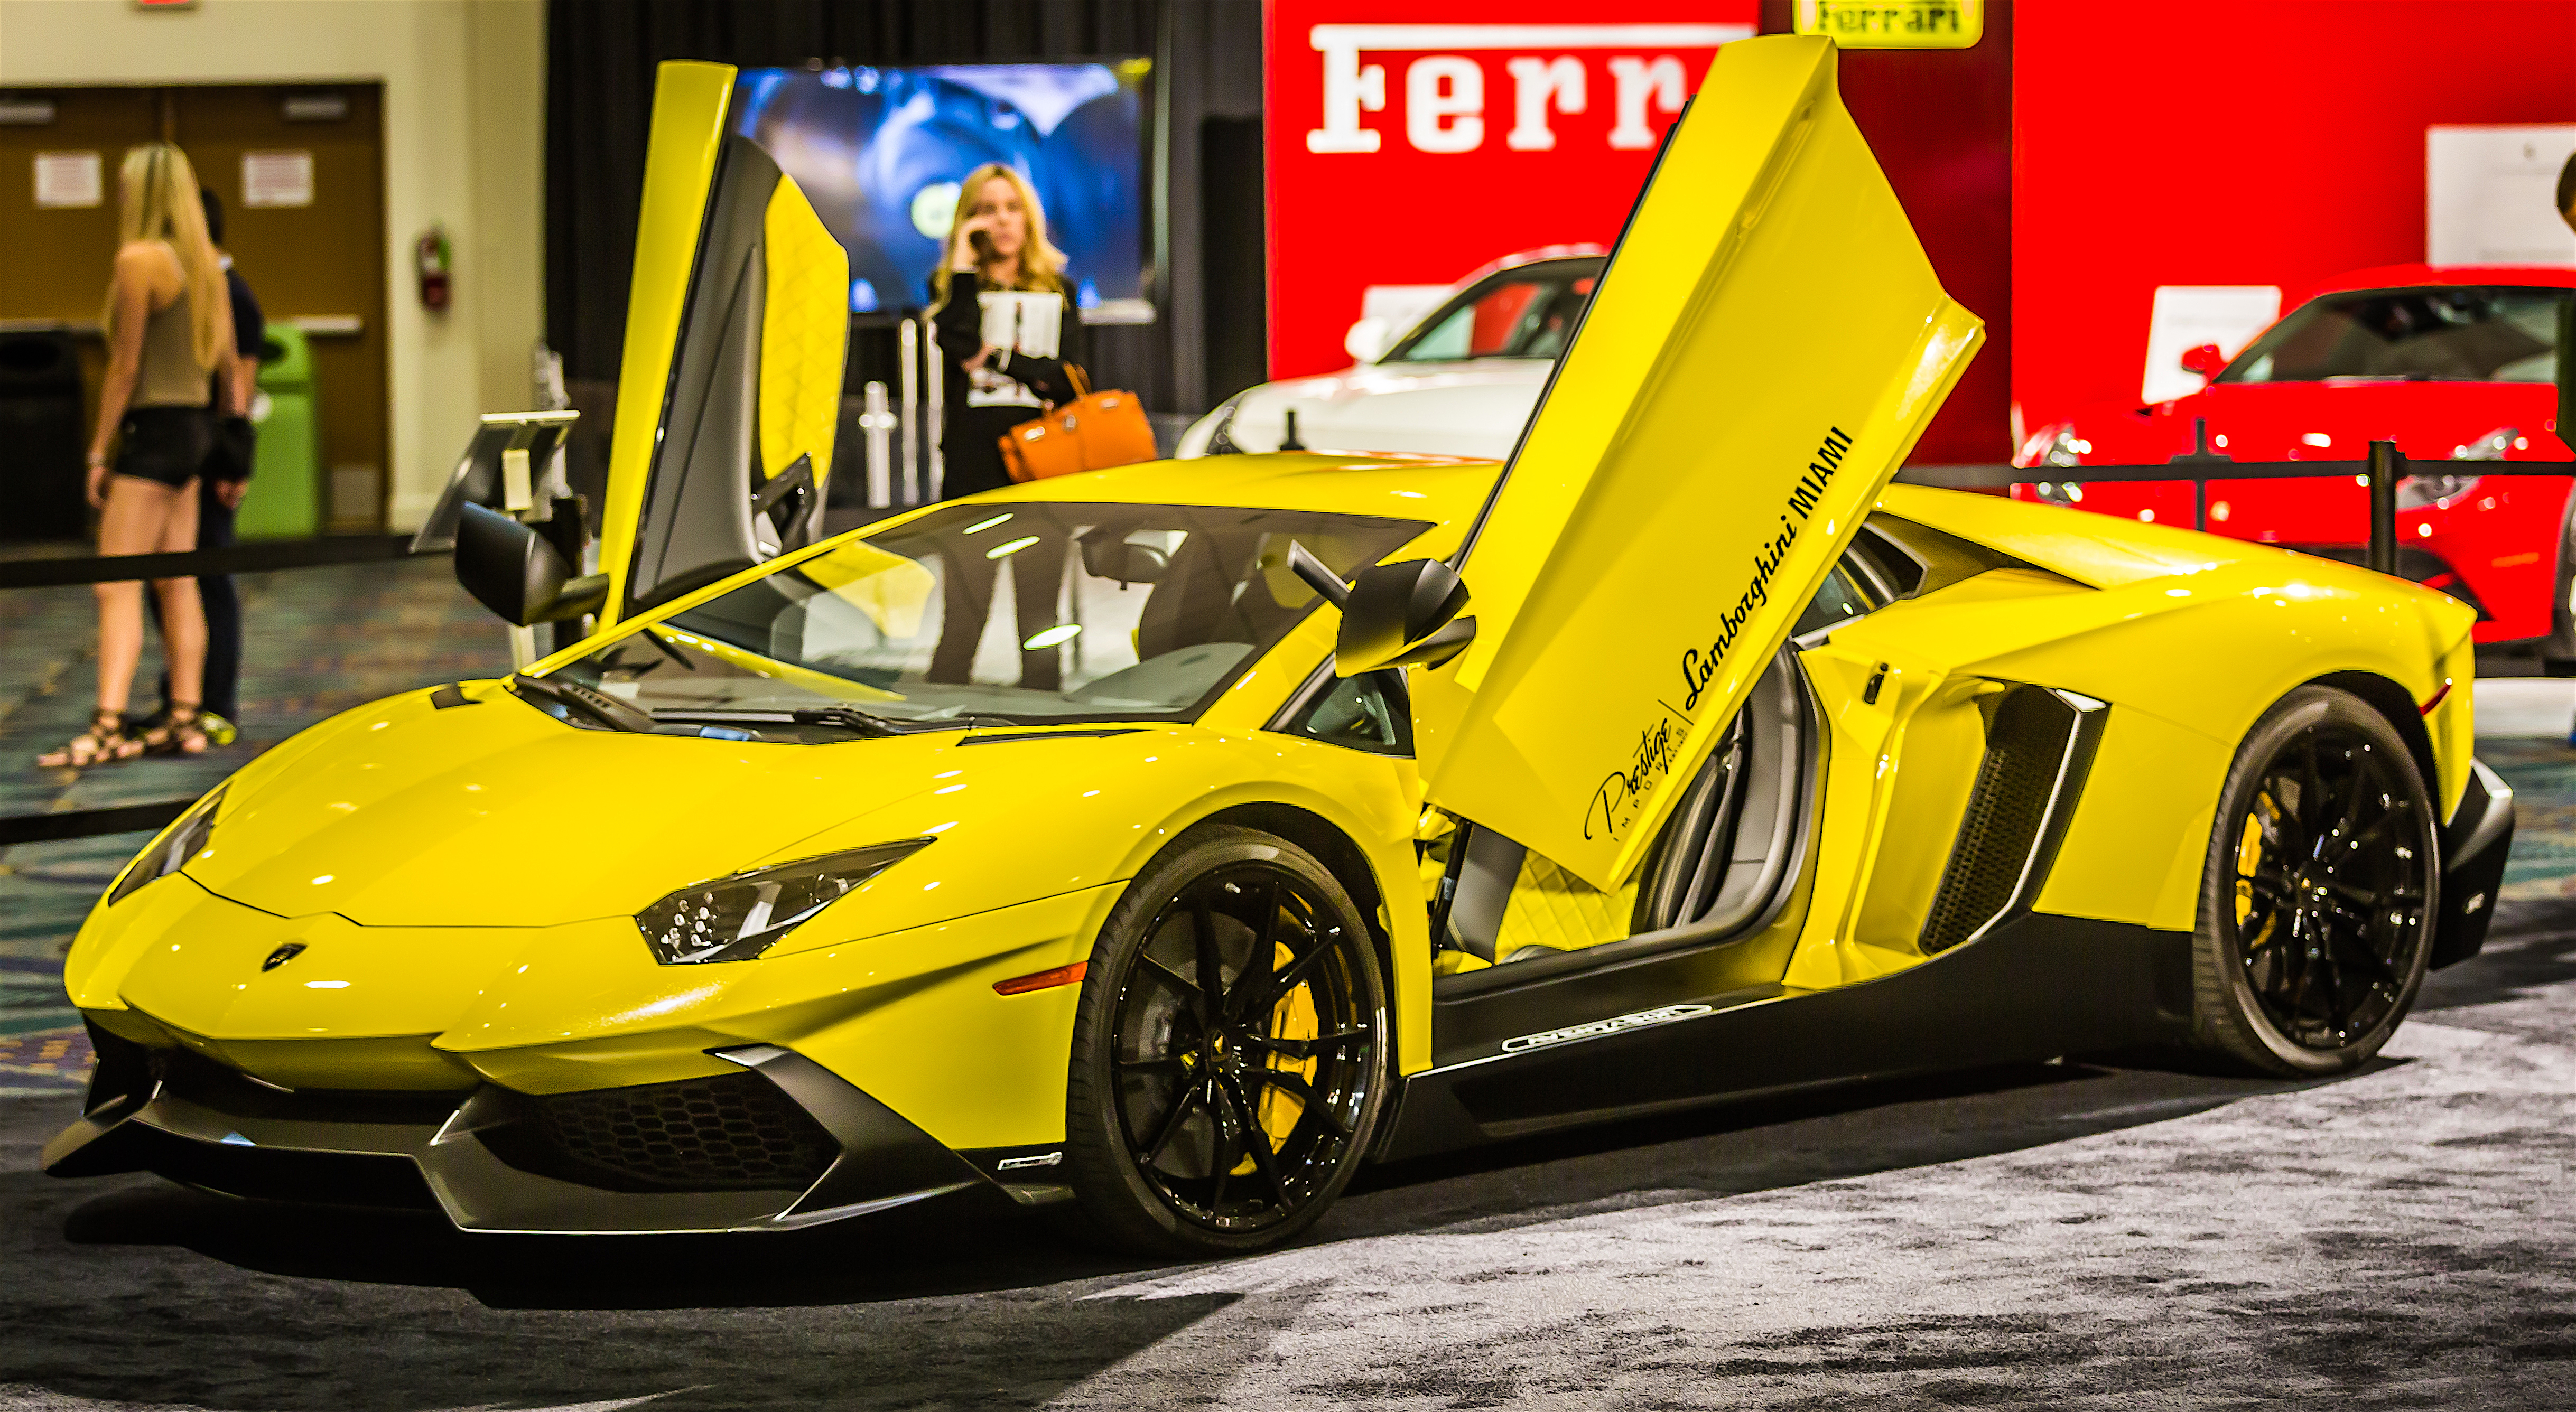 Auto Show Miami, Jorge Martinez Gualdron, Jorge Martinez Photography, Miami Photographer, Art Miami,